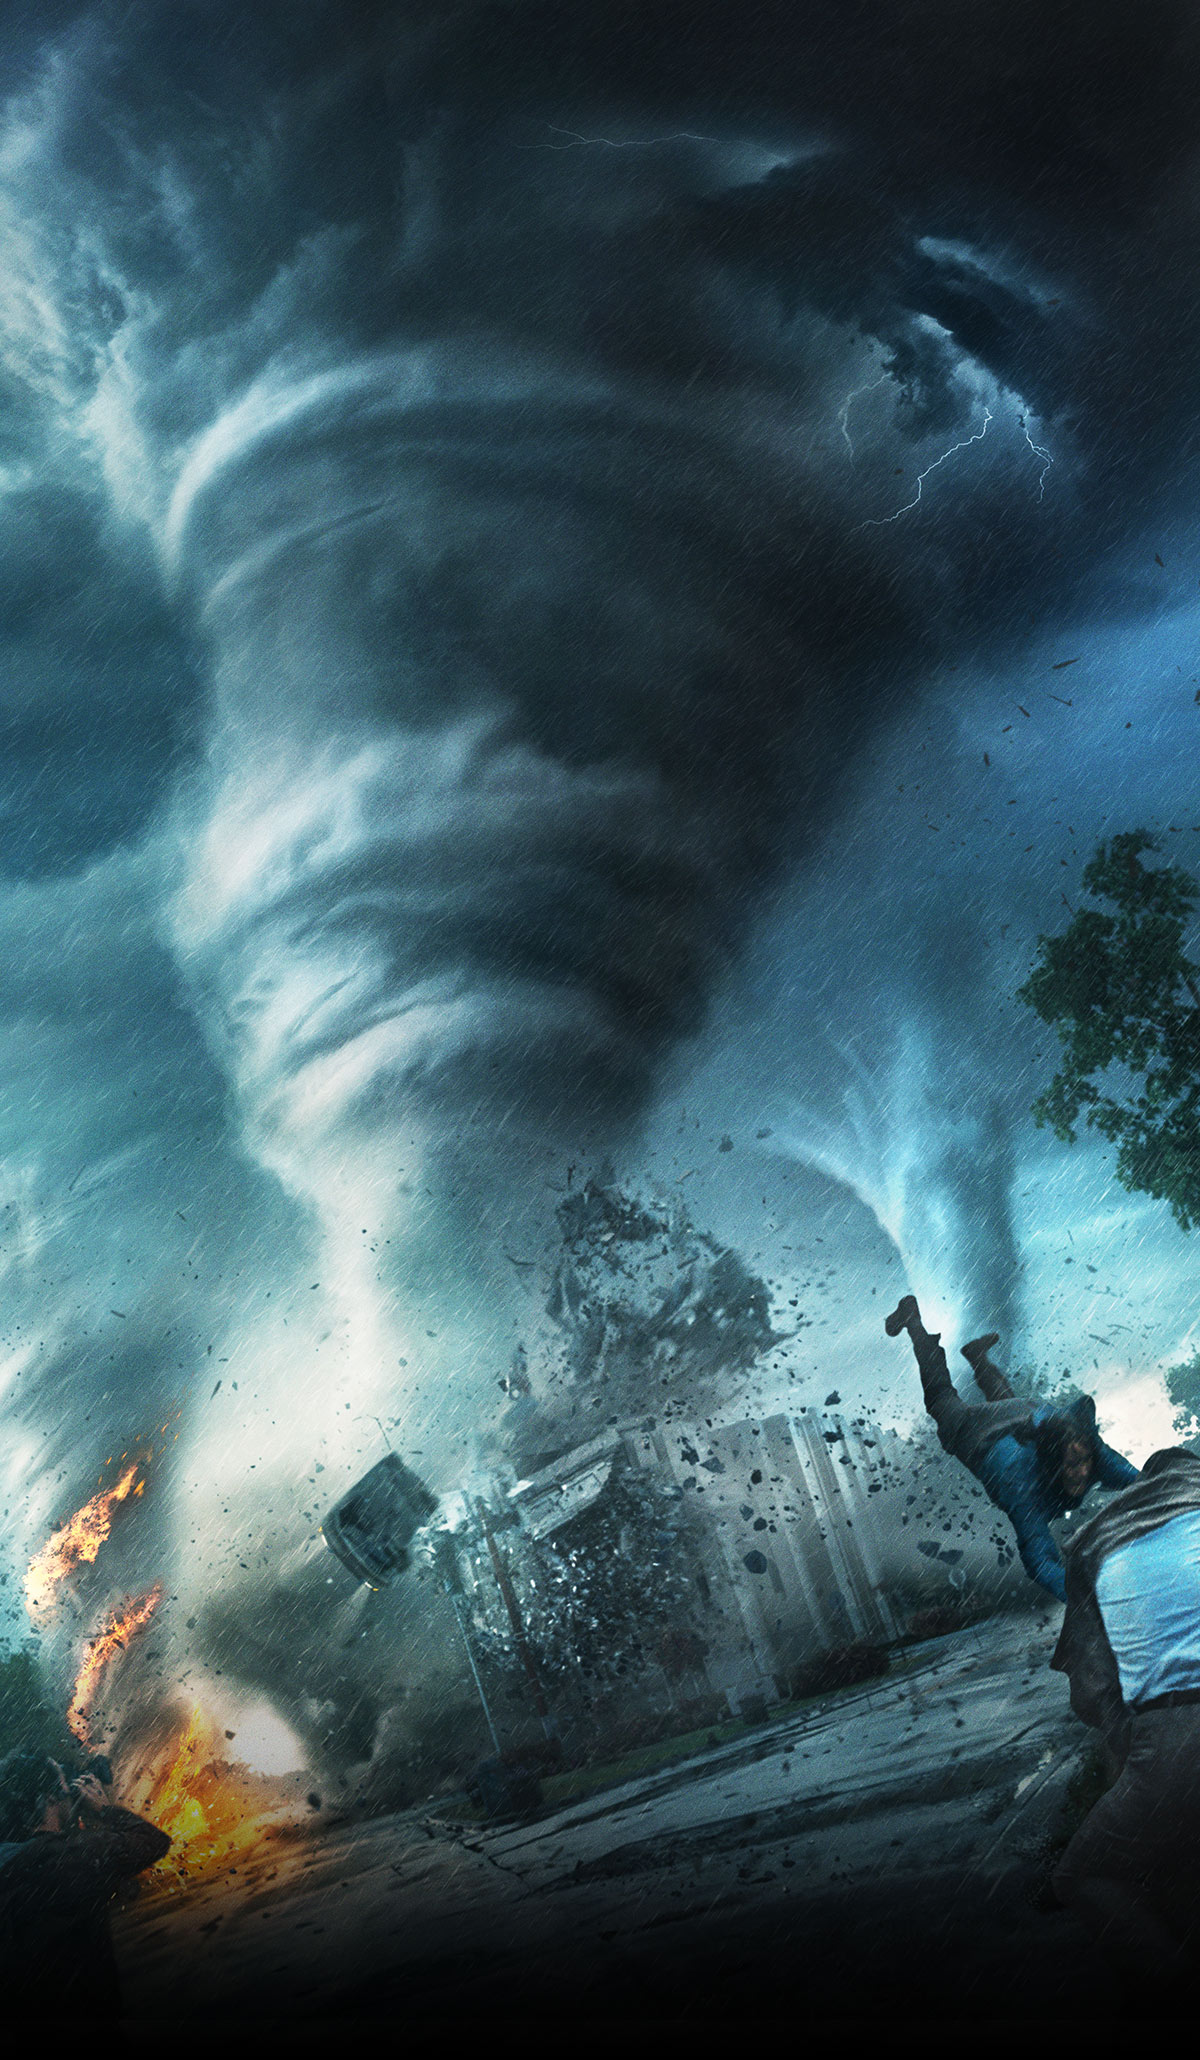 Bad Girl Live Wallpaper Storm Wallpapers High Quality Download Free